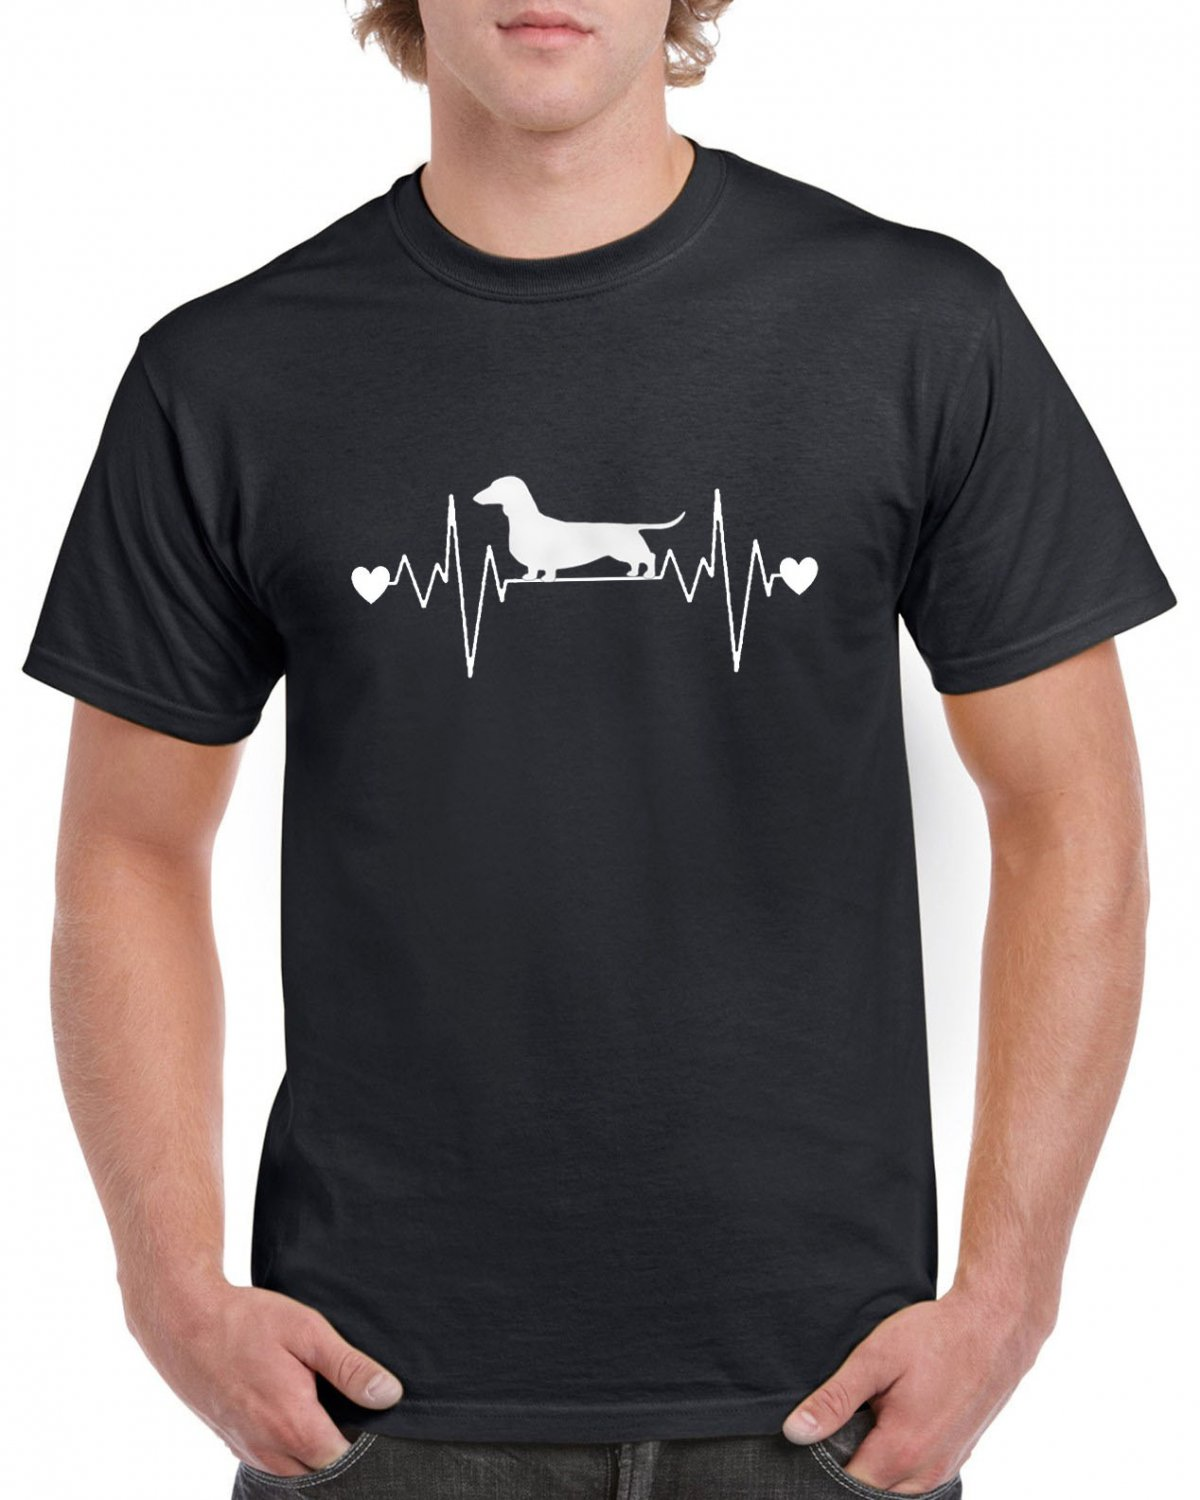 Dachshund Dog Heart Pulse Rate T-shirt Dog Lovers Tshirt Cool Unisex Top Tee